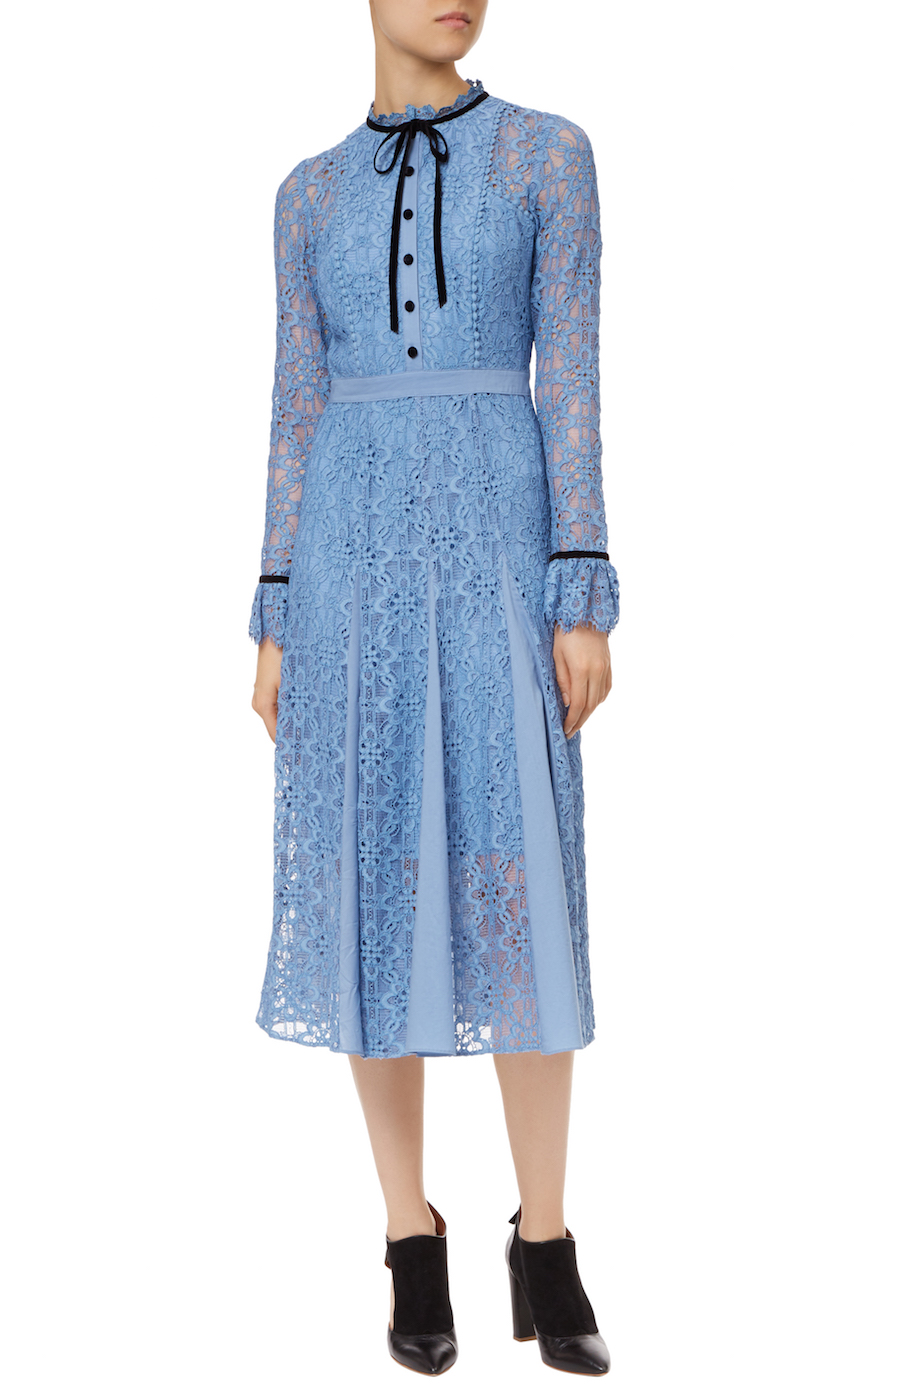 Temperley London IRIS Eclipse Dress in powder blue lace with black trim neck tie